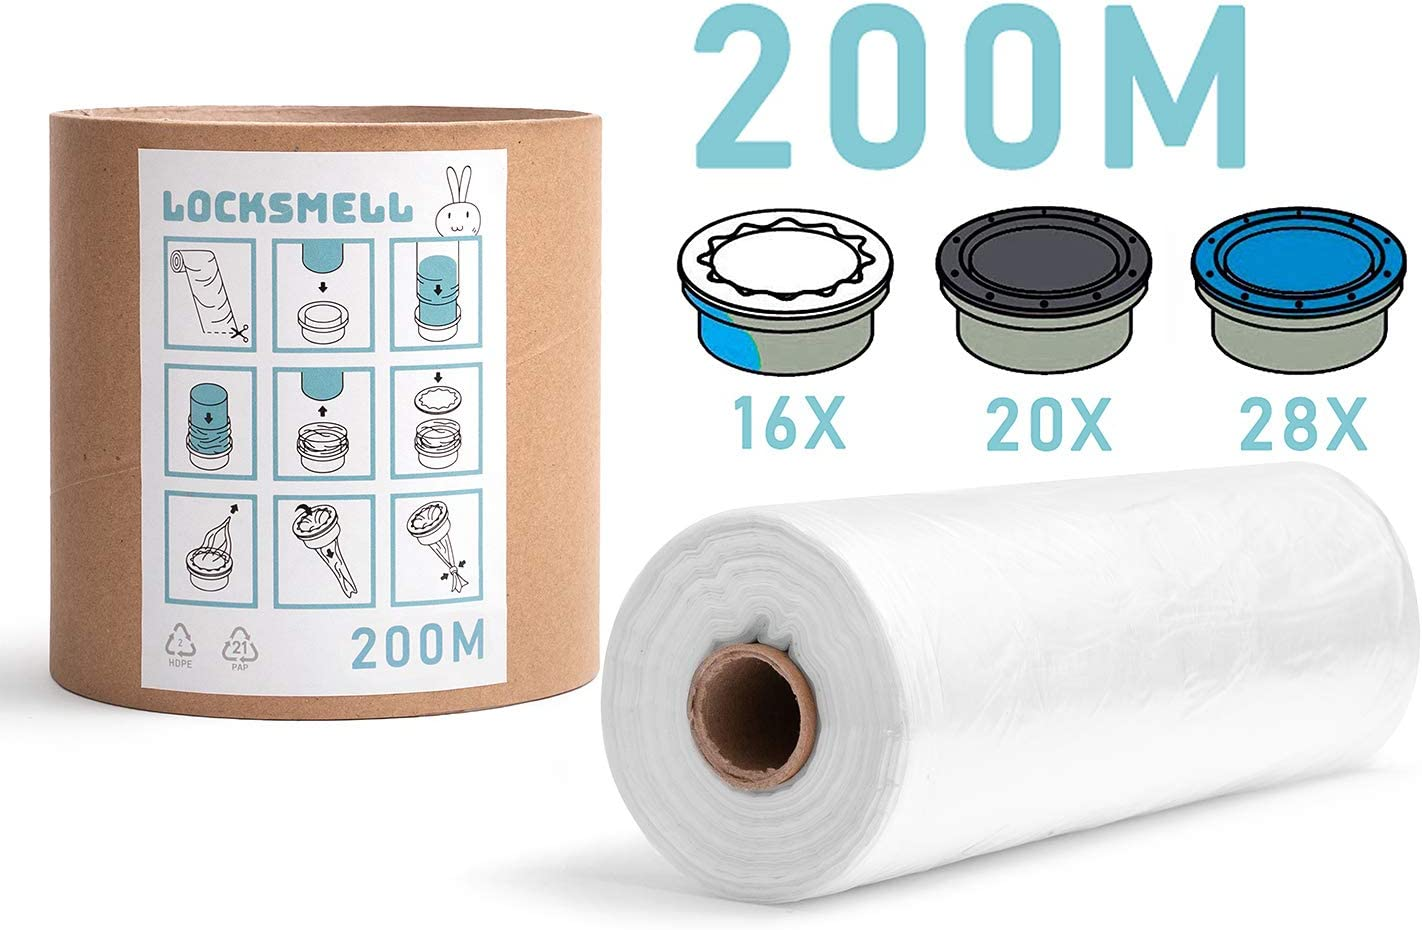 LOCKSMELL Nappy Bin Liners Compatible with Tommee Tippee Sangenic REFILL TUBE 100 m Angelcare /& Litter Locker II cartridges